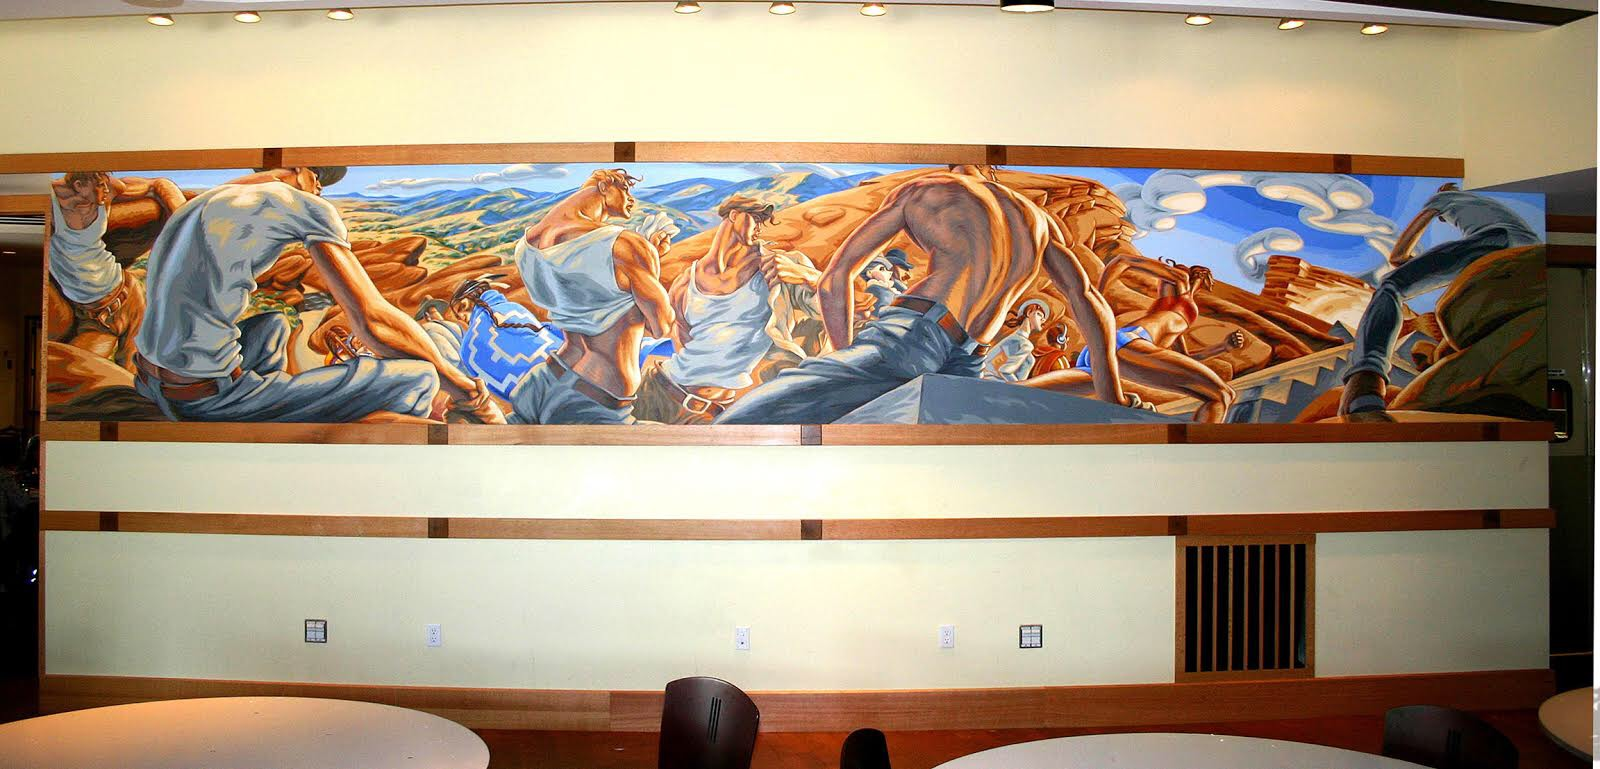 """Reid's """"March To Progress"""" mural, which was eventually accepted by the Commission. It now hangs in the Red Rocks Room at the concert venue. (Credit: Andrew Reid)"""